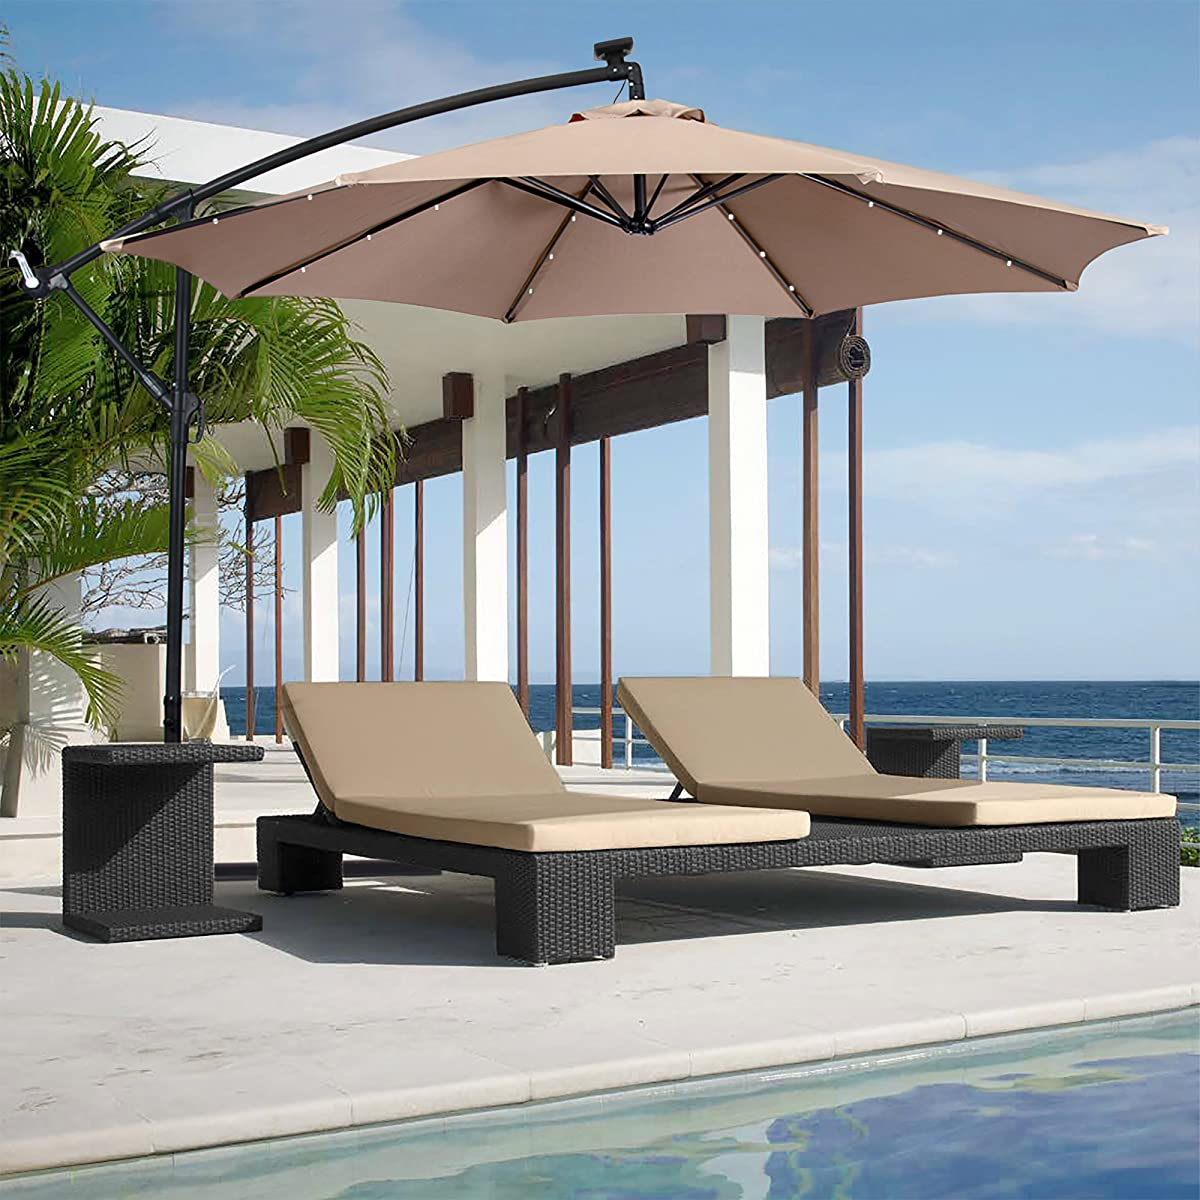 Best Choice Products 10ft Solar LED Patio Offset Umbrella w/Easy Tilt Adjustment - Tan